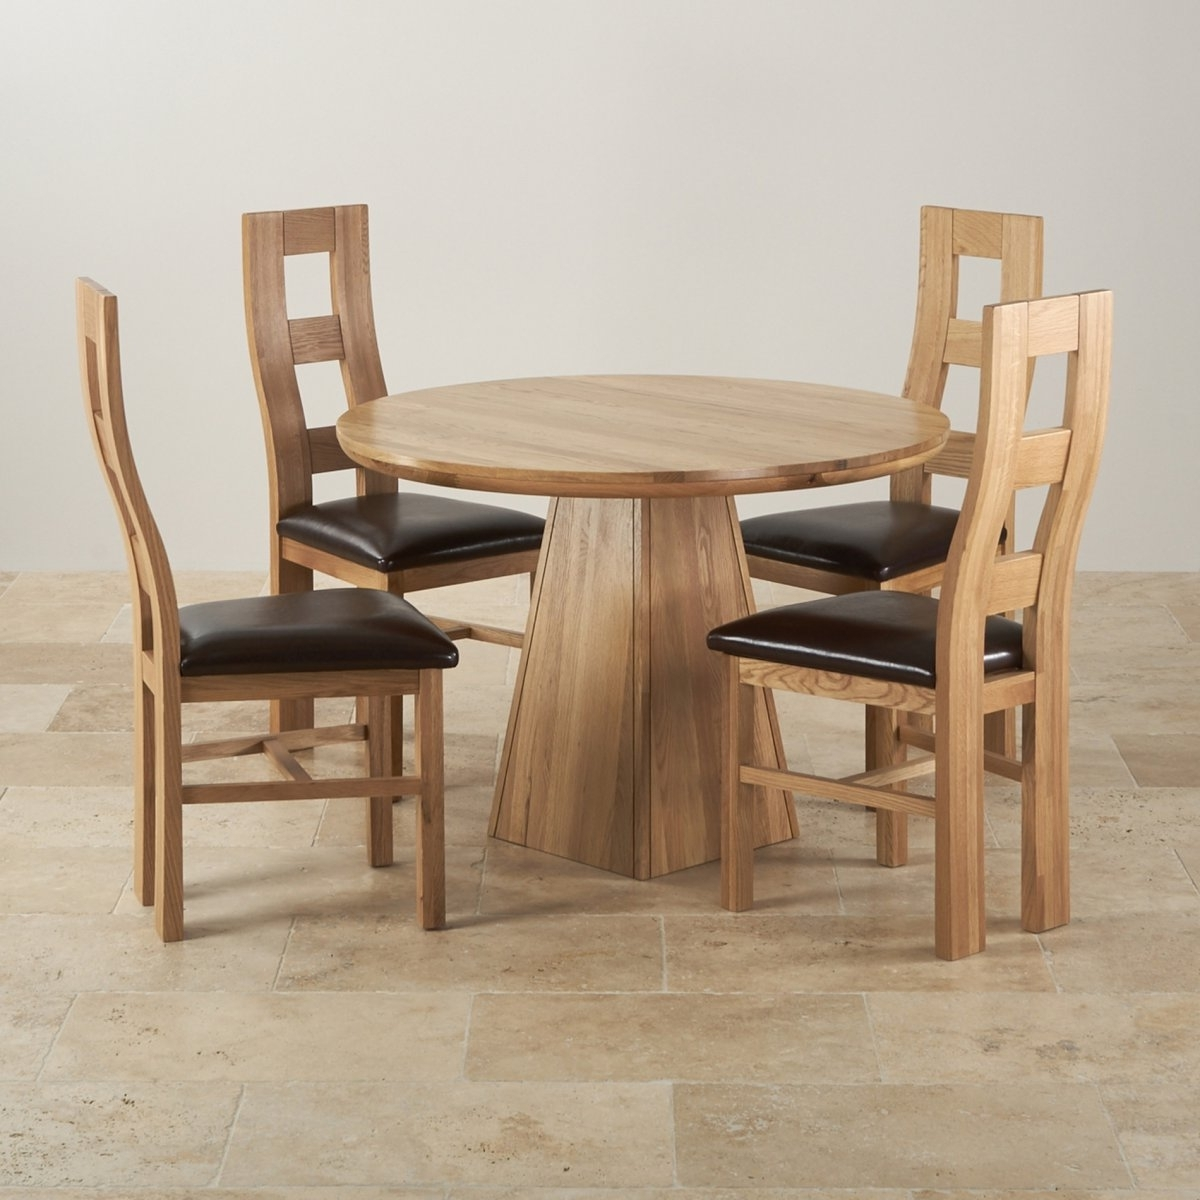 Round Oak Dining Tables And Chairs throughout Favorite Provence Solid Oak Dining Set 3Ft 7Quot; Table With 4 Chairs, Dining